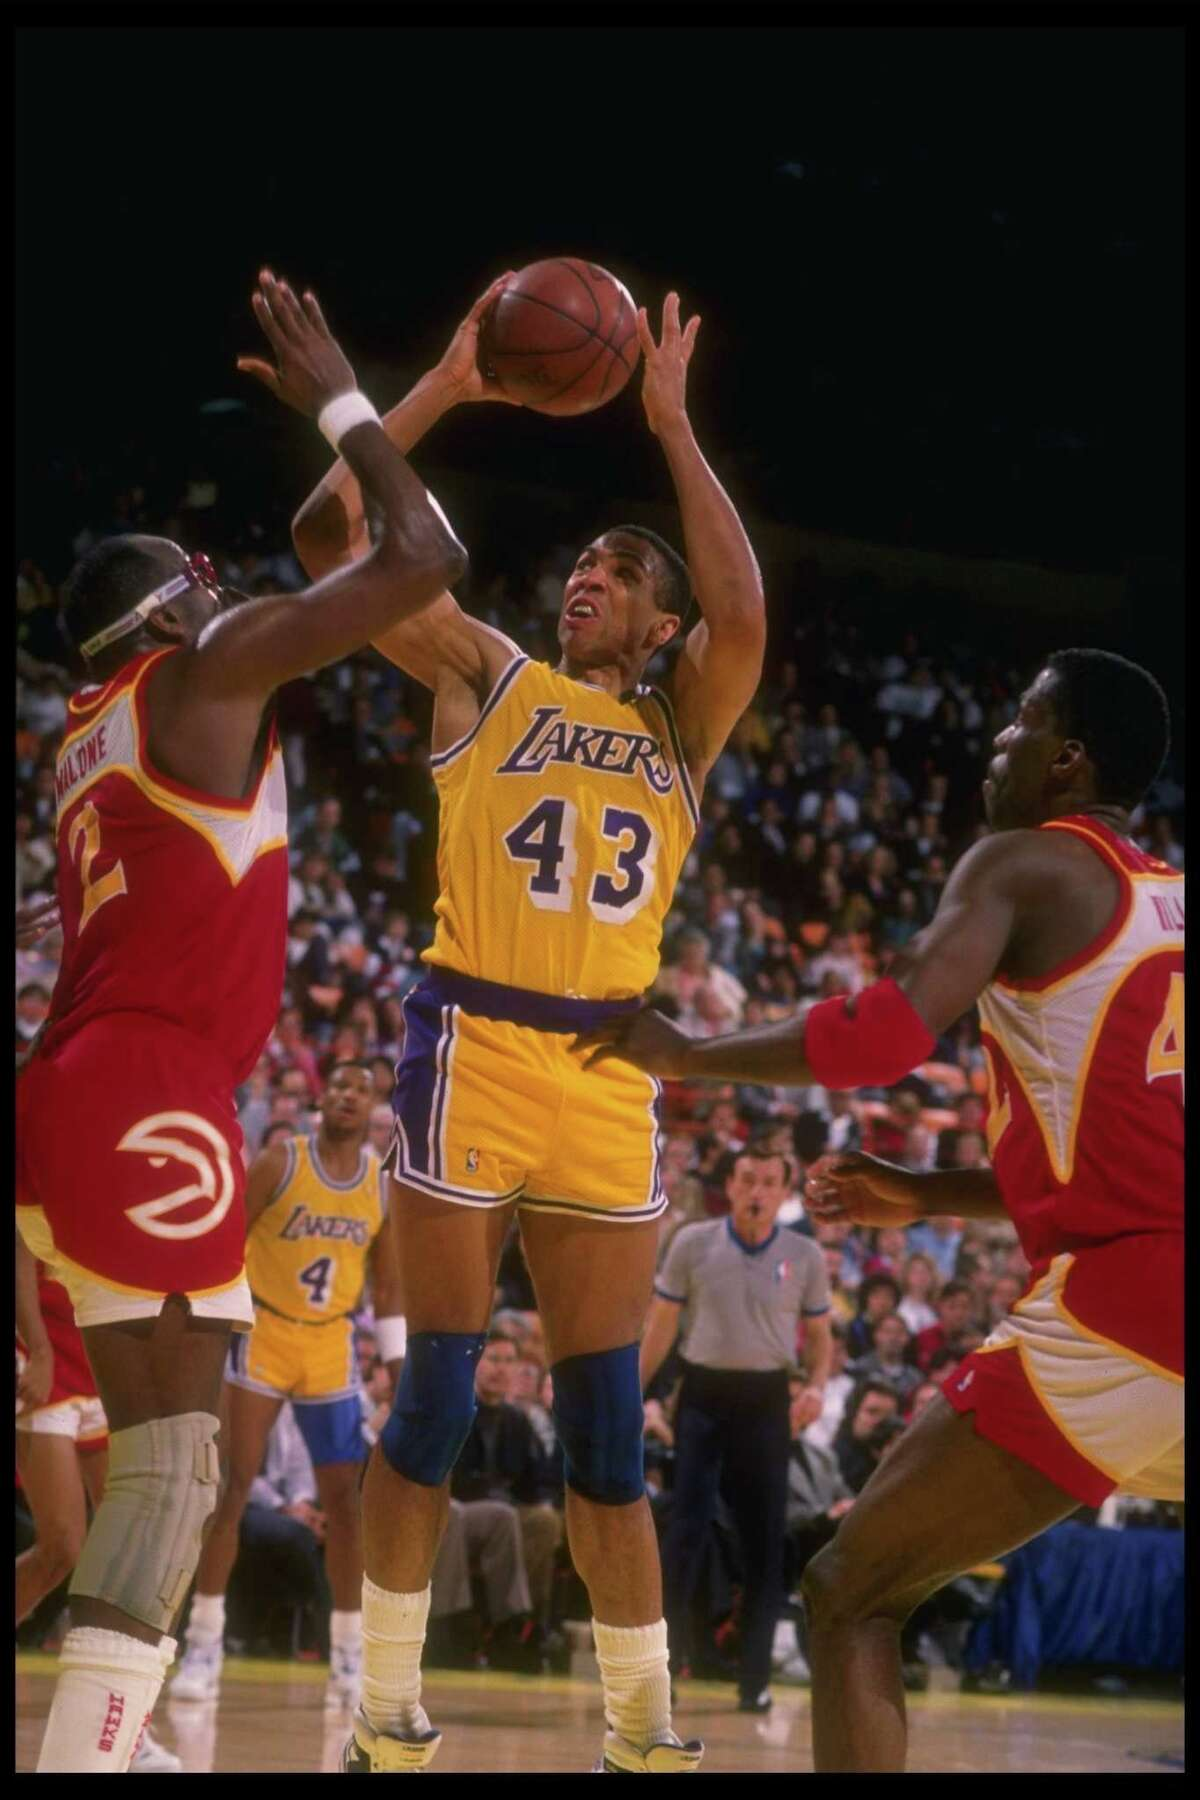 Mychal Thompson, 1987 The Lakers got Thompson - better known now as the father of Warriors star Klay Thompson - from the Spurs for a pittance: Frank Brickowski, Peter Gudmundsson, a 1987 first-round pick and a 1990 second-round pick. Thompson, a former first overall pick, gave Los Angeles more frontcourt depth and a foil for Boston's Kevin McHale, a former college teammate at Minnesota. Thompson helped the Lakers win two championships - including against the Celtics in 1987 - and make two more Finals appearances during his five Lakers seasons. The guys the Spurs got amounted to nothing.